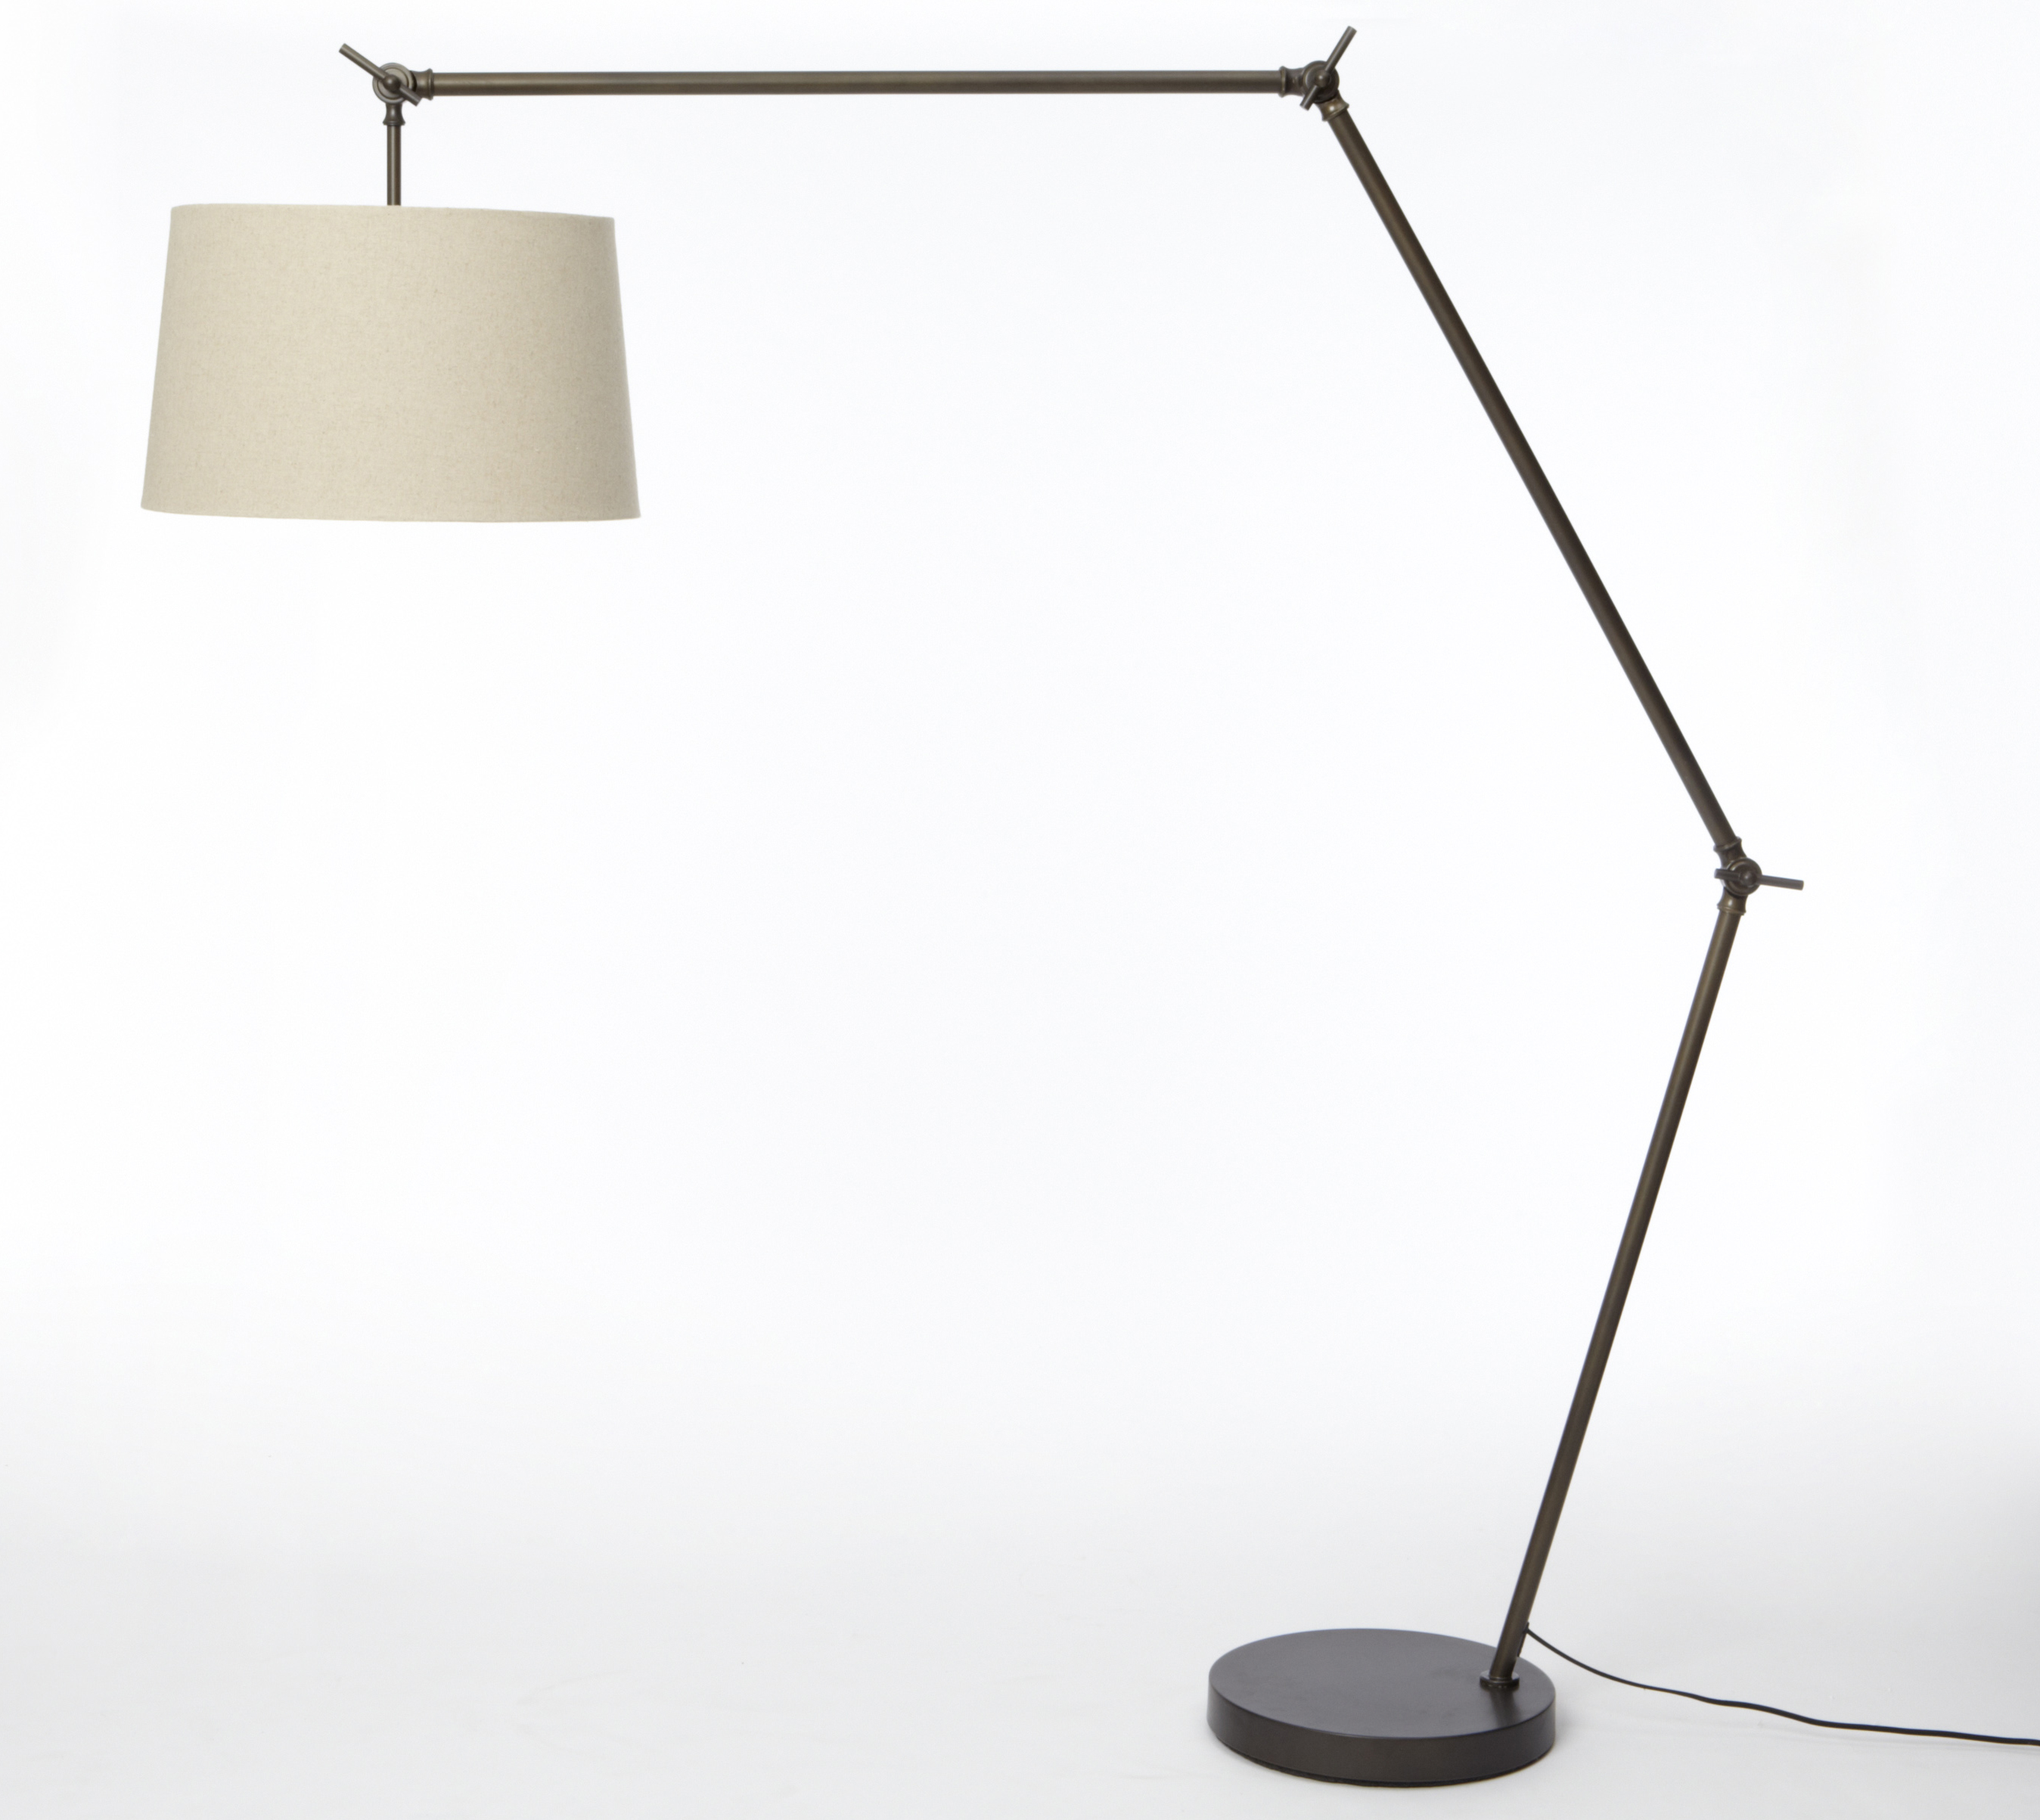 floor lamp stand photo - 1